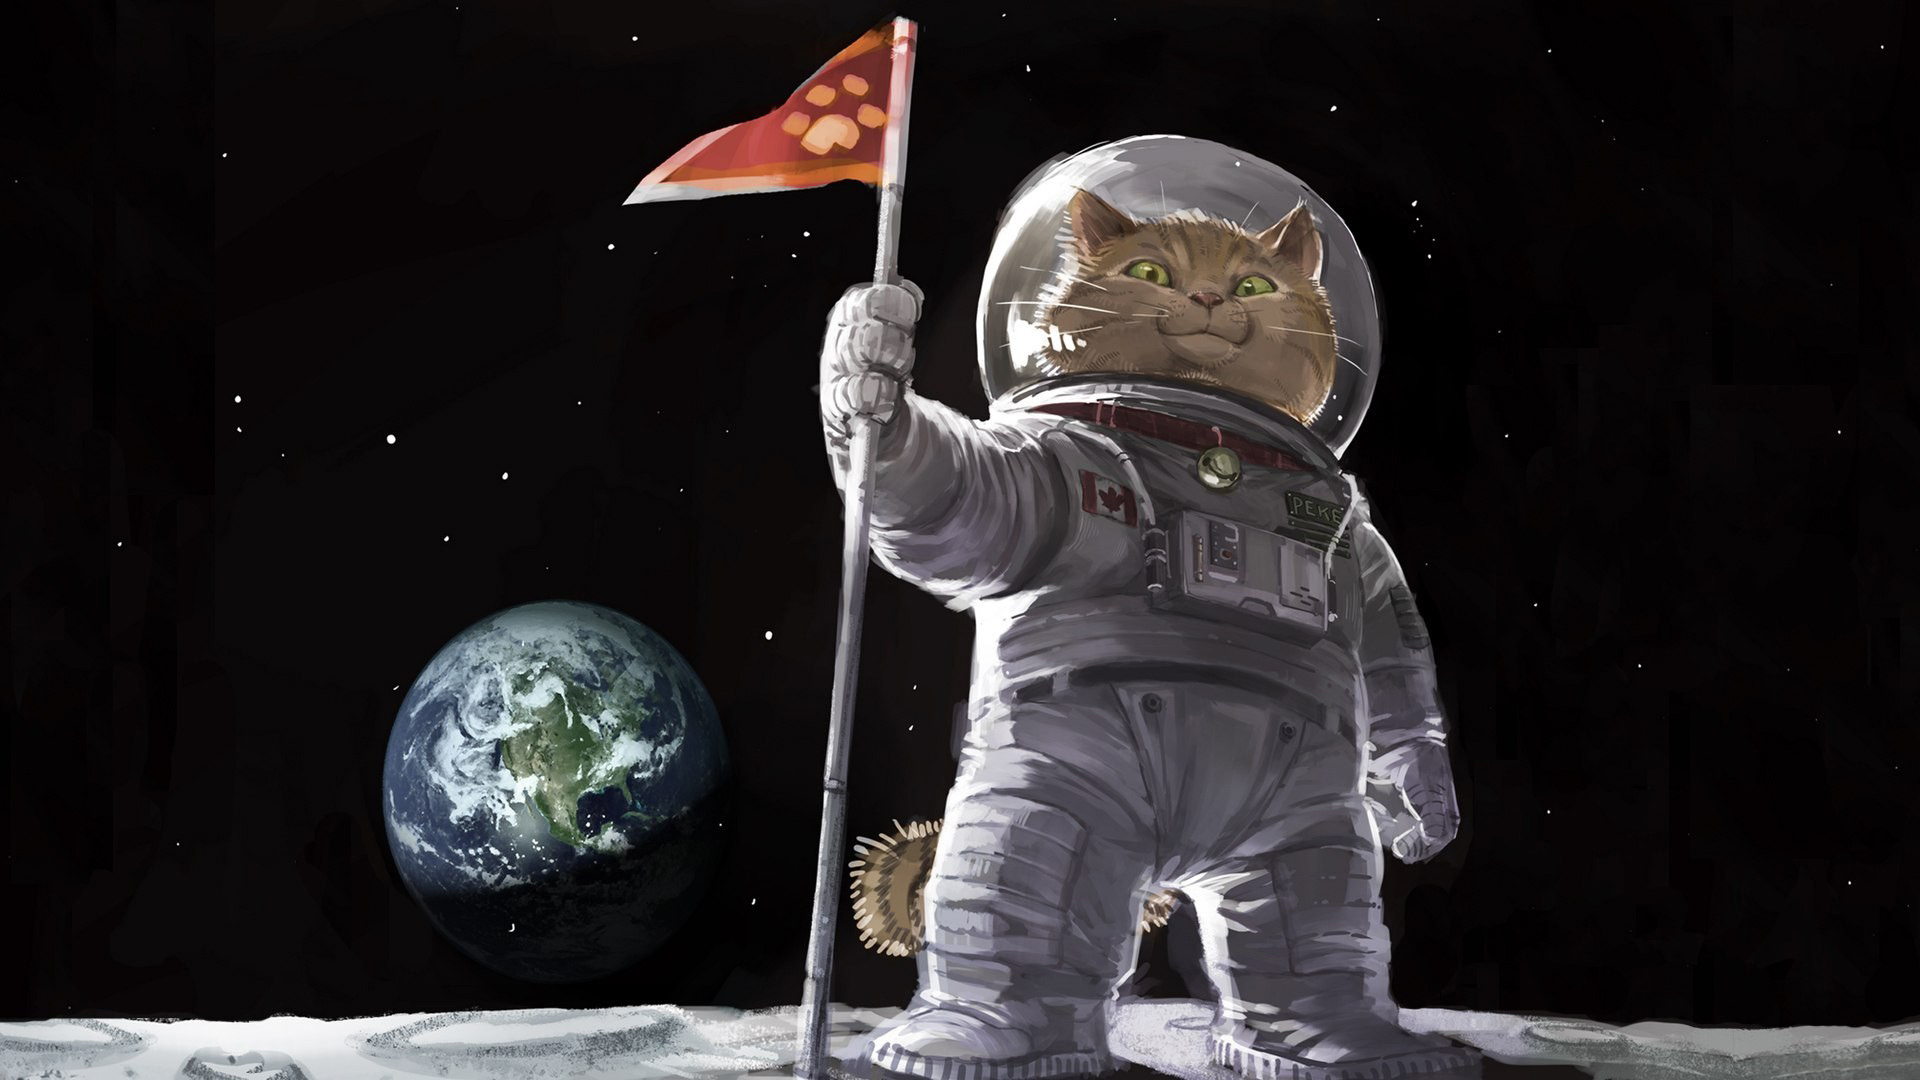 General 1920x1080 cats spacesuit flag Earth Moon digital art space